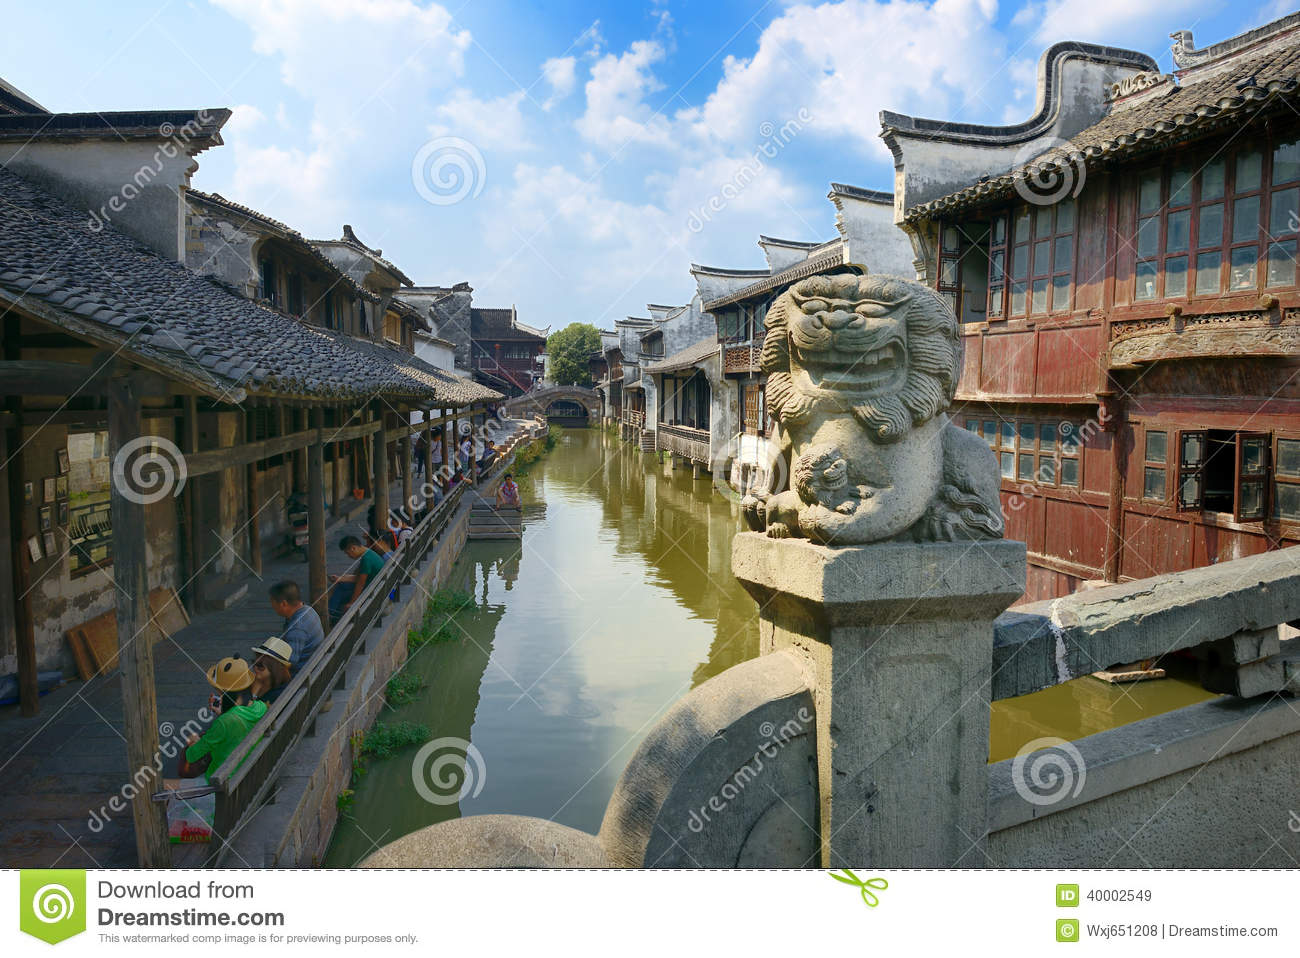 China,Shanghai Water Village Wuzhen 1 Editorial Stock Image - Image: 40002549